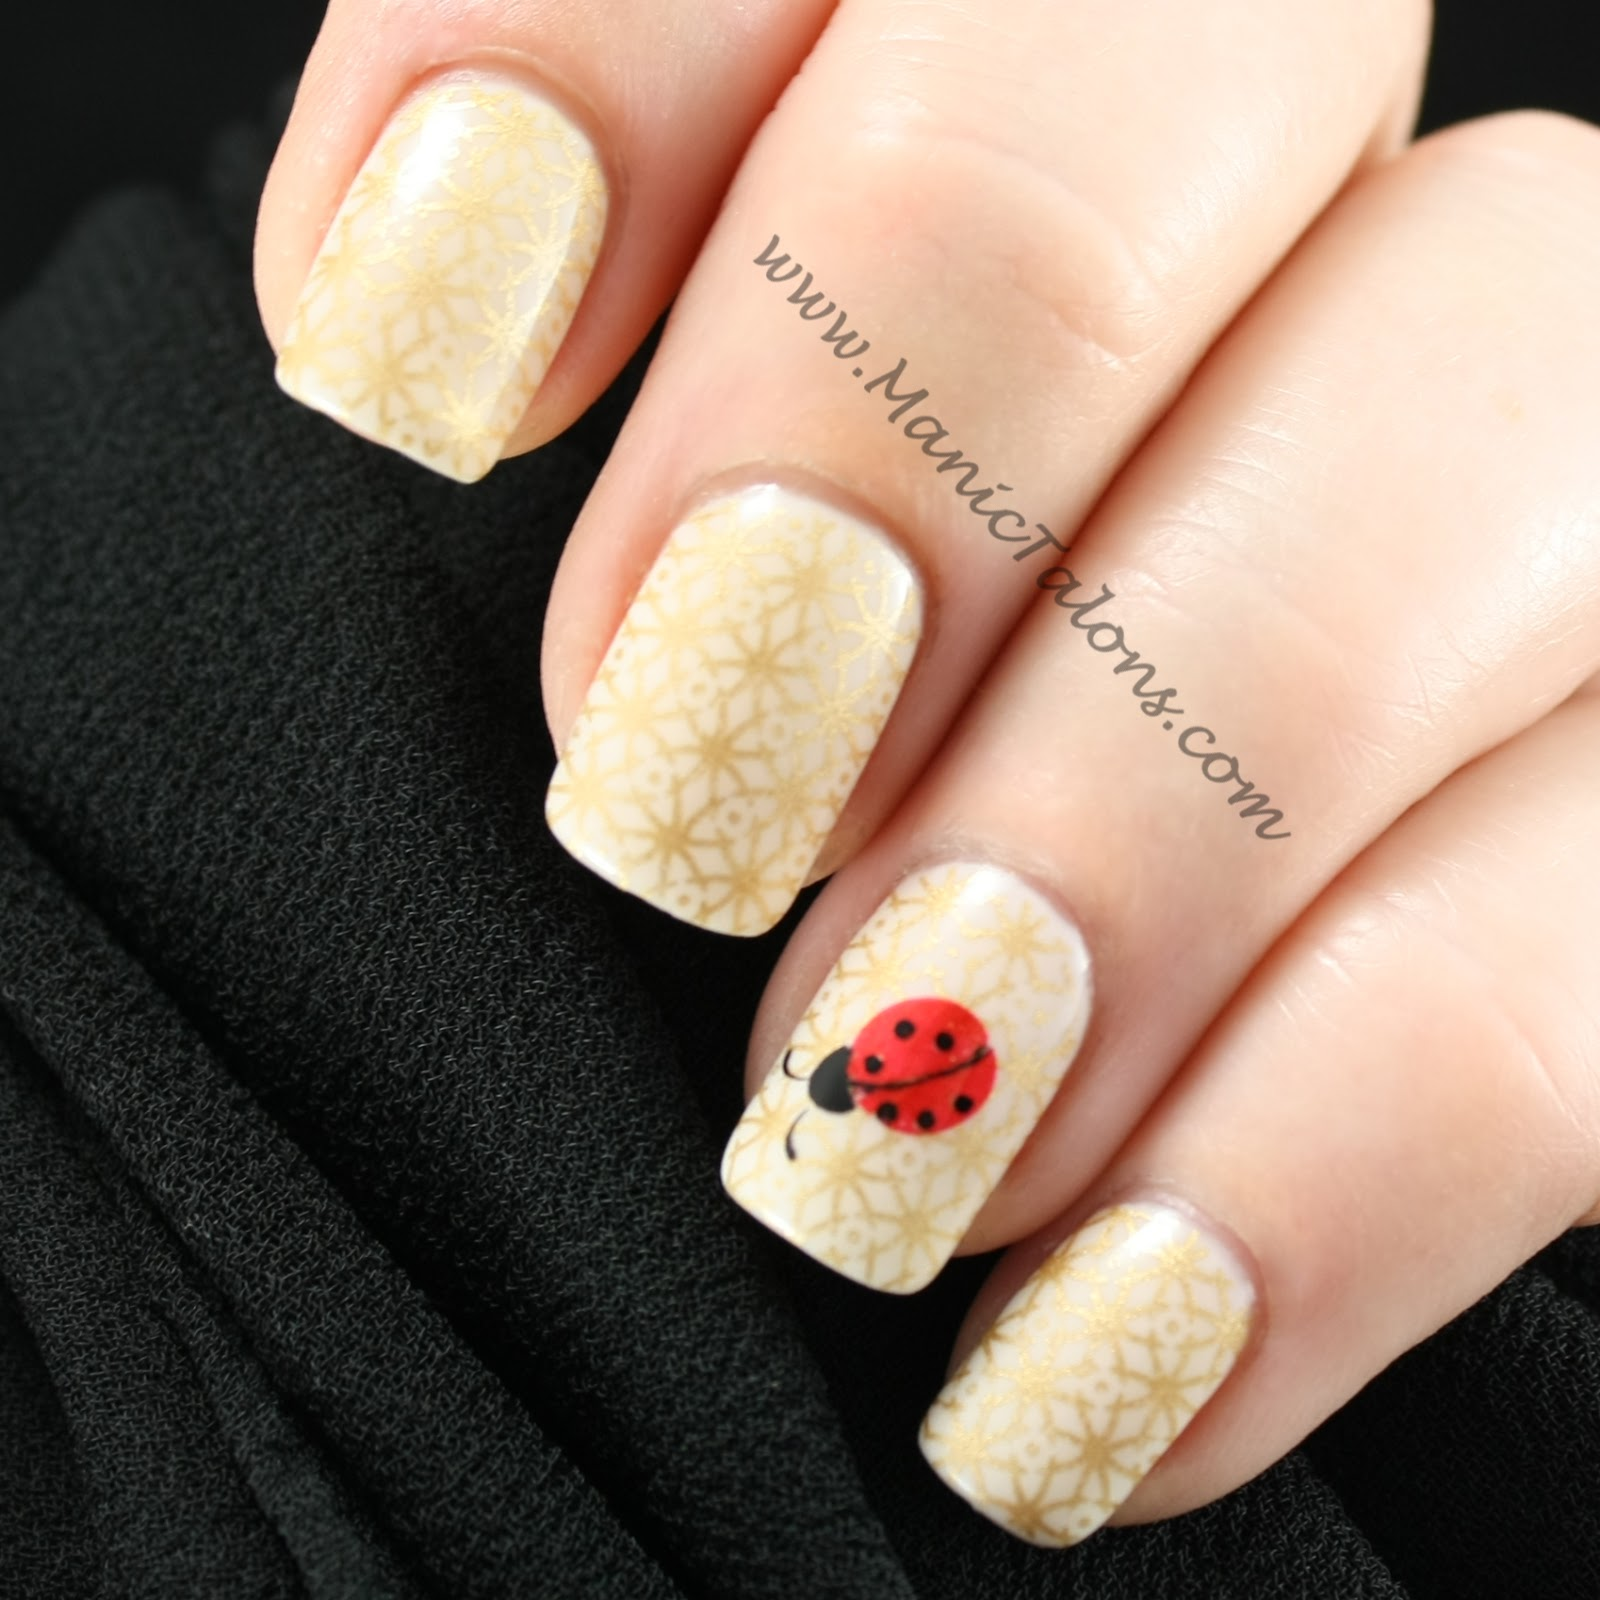 Manic Talons Nail Design: Neutral, Gold and Ladybugs: A New Years ...